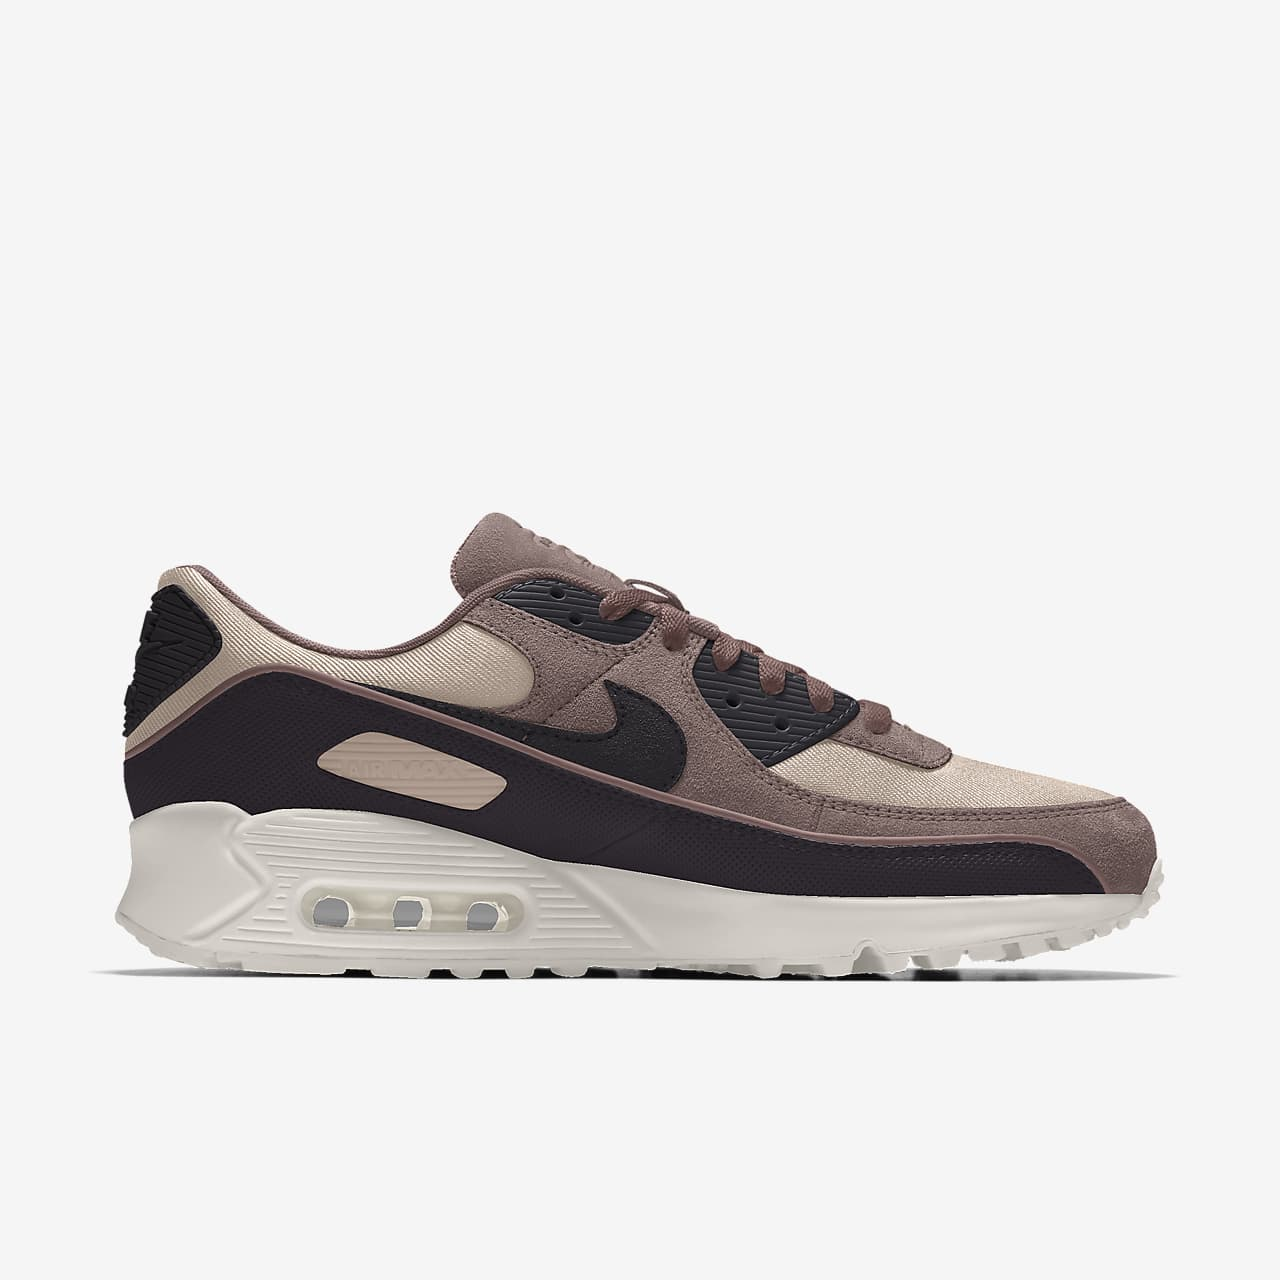 Chaussure personnalisable Nike Air Max 90 Unlocked By You pour ...